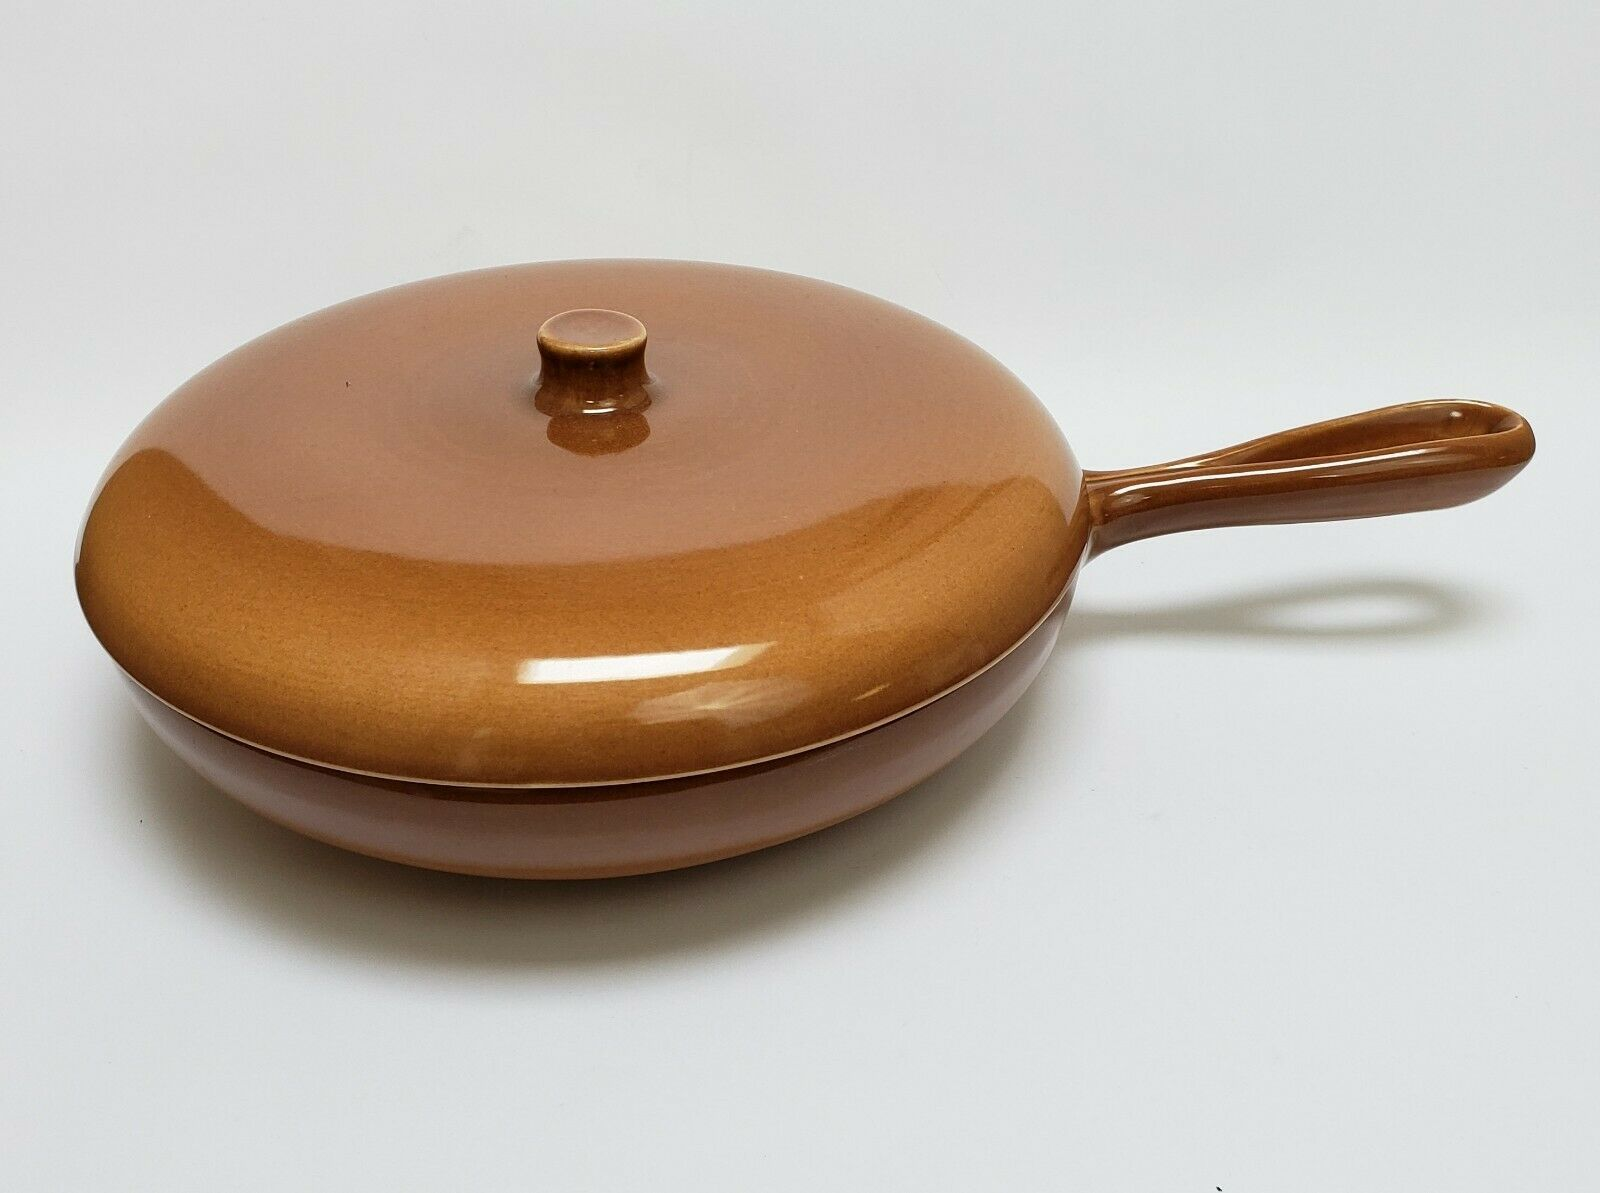 Primary image for Russel Wright Iroquois Casual Cookware Skillet Fry Sauce Pan Ripe Apricot USA